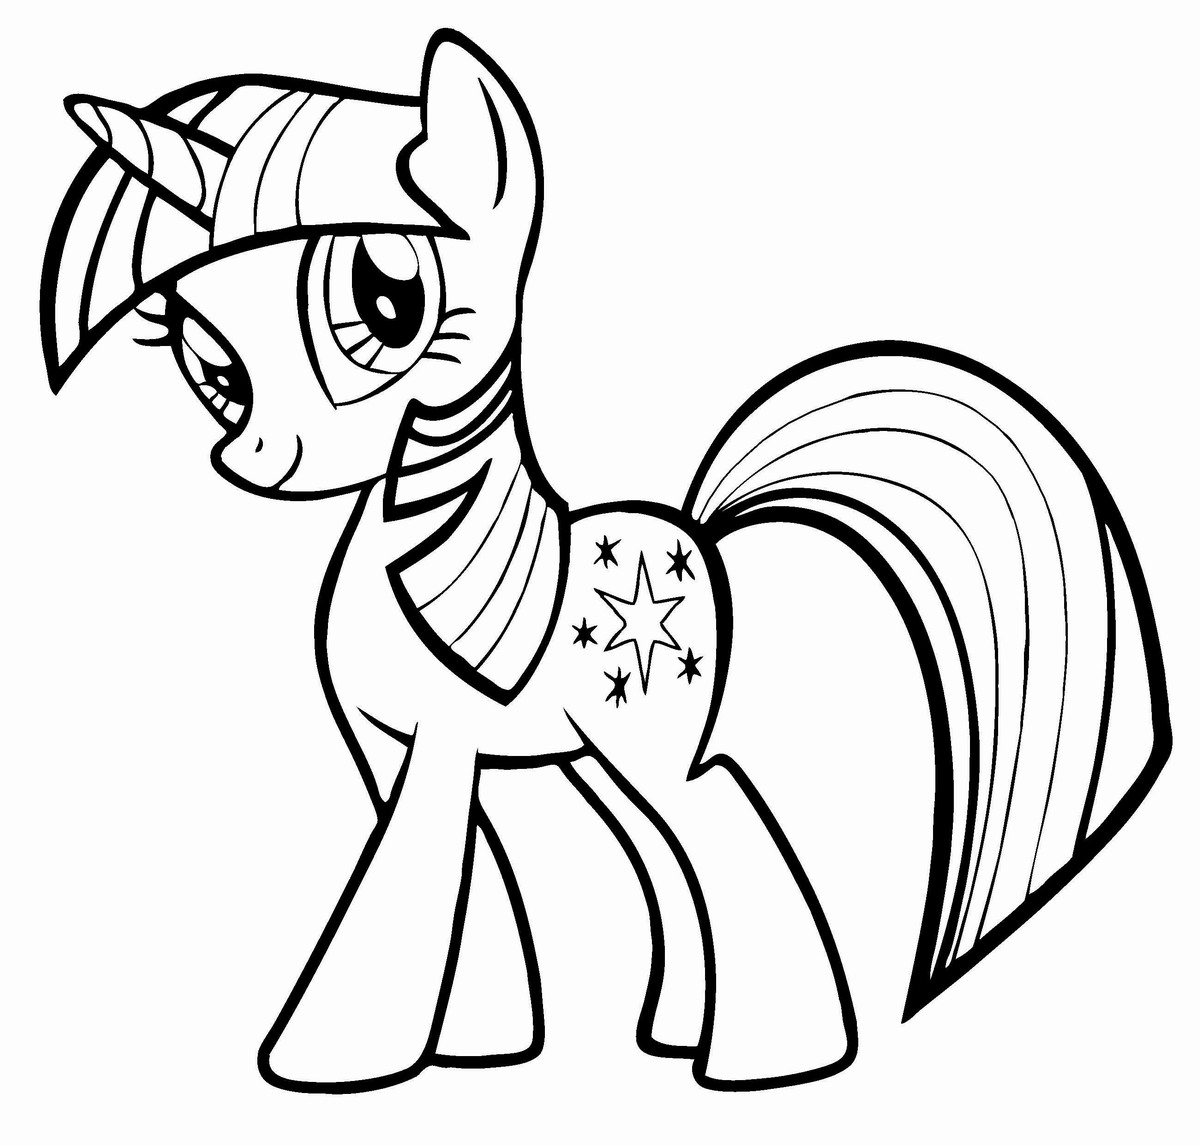 mlp colouring my little pony coloring pages mlp colouring 1 3